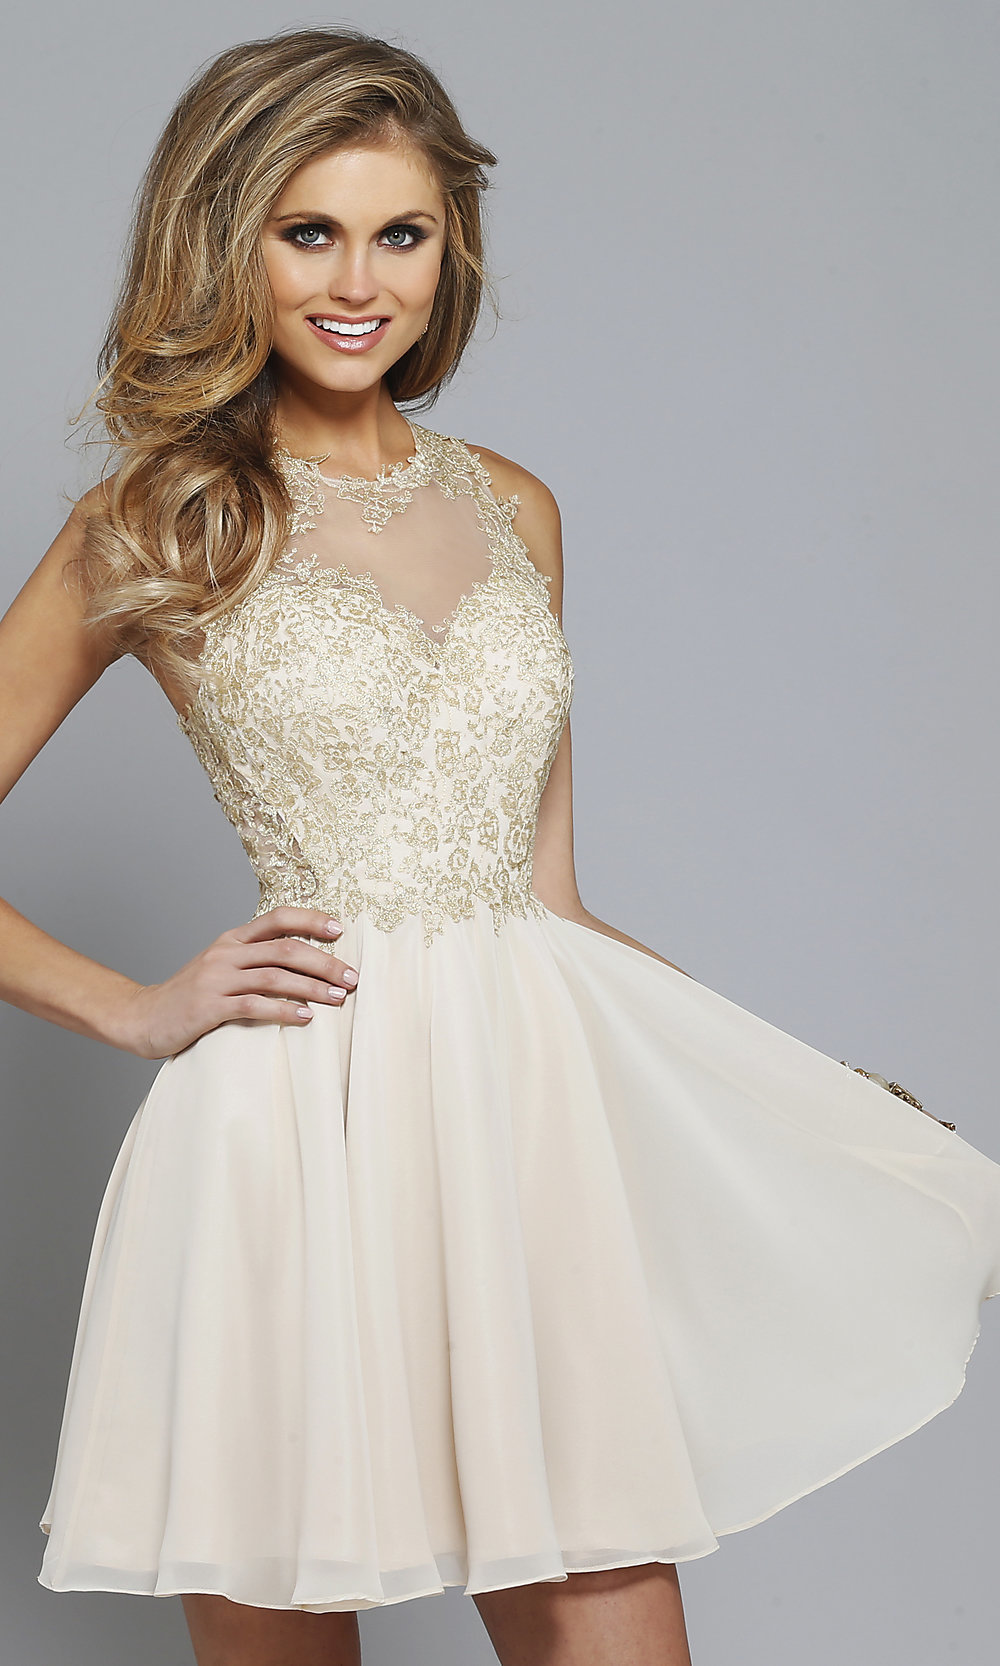 174c3f831f8ef Faviana Short Prom Dress, Party Dress with Lace